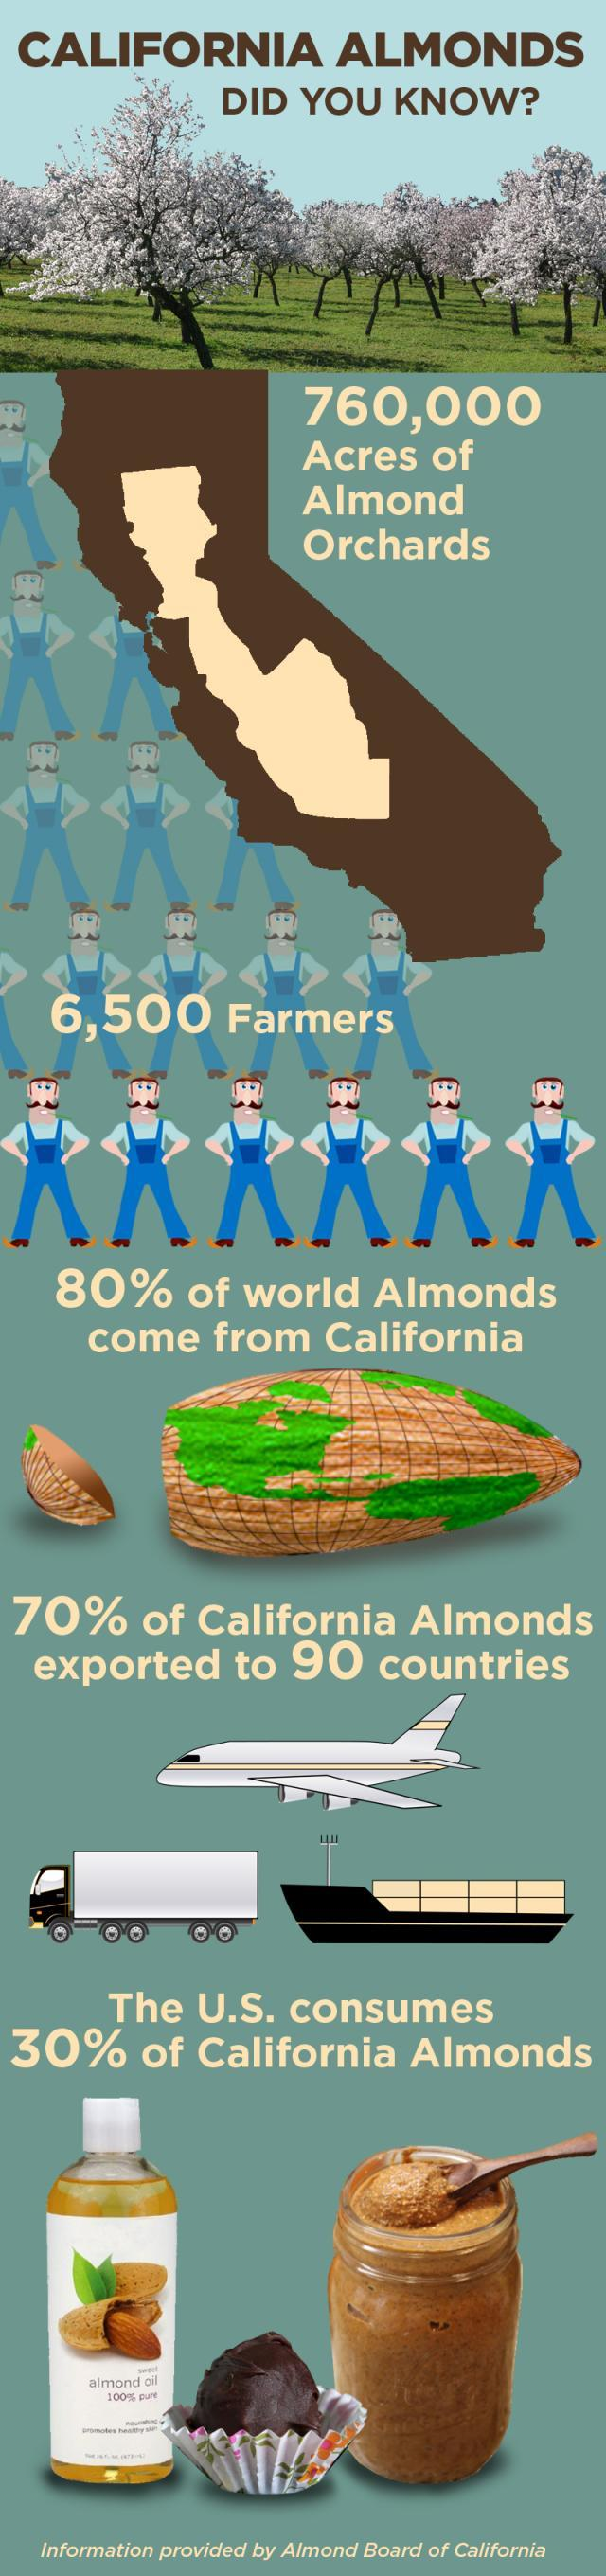 California almonds make up 80 percent of world production